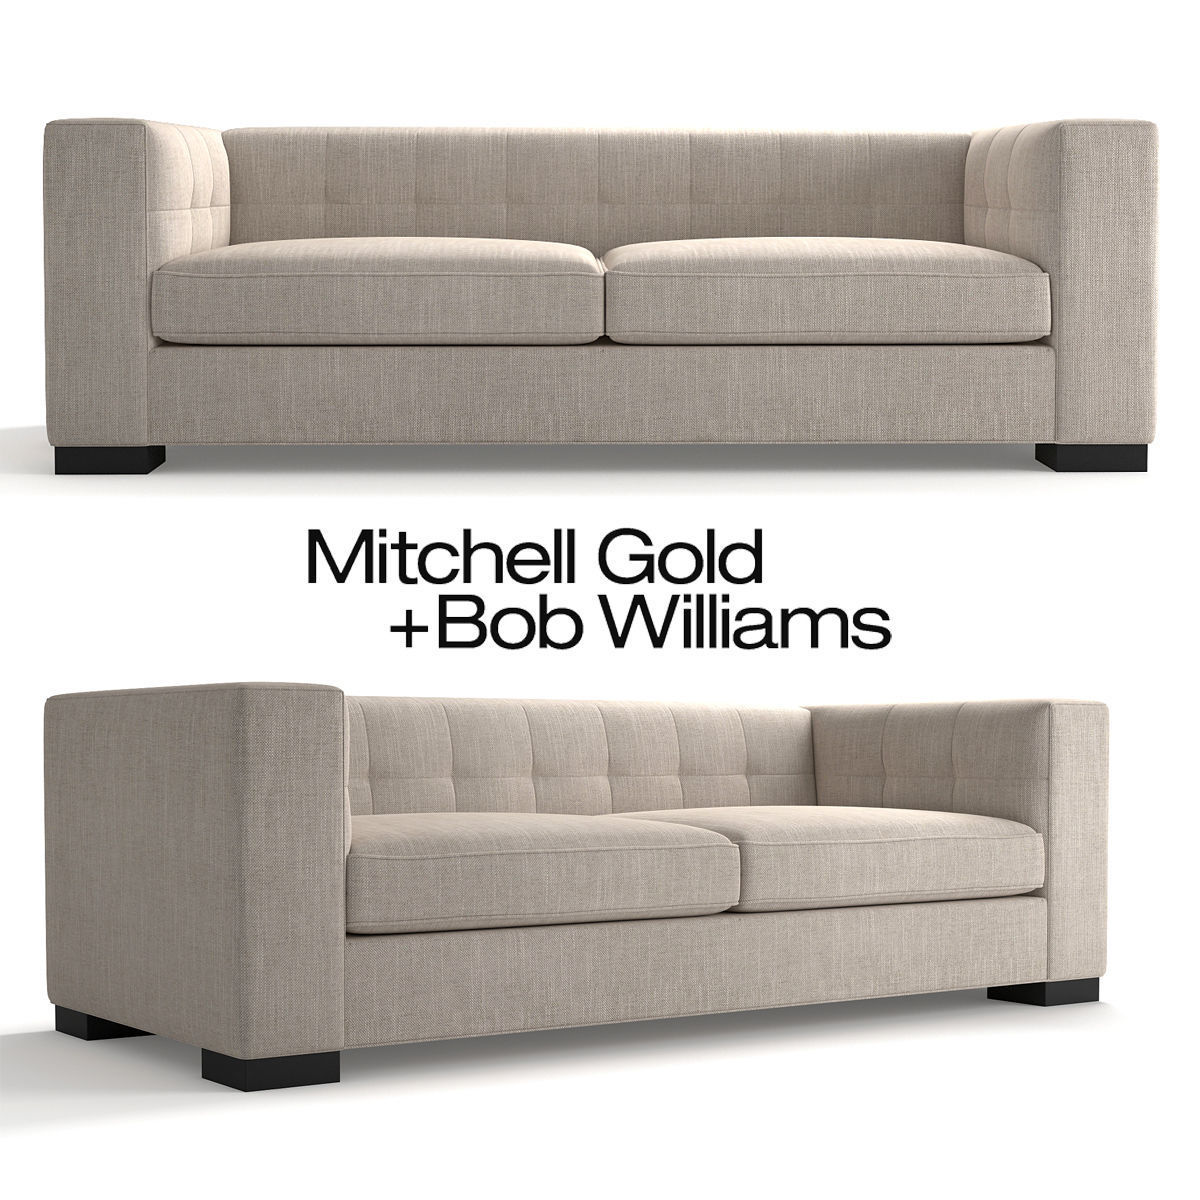 mitchell gold sofa. Mitchell Gold Bronson Sofa 3d Model Max Obj Fbx Mtl Mat 1